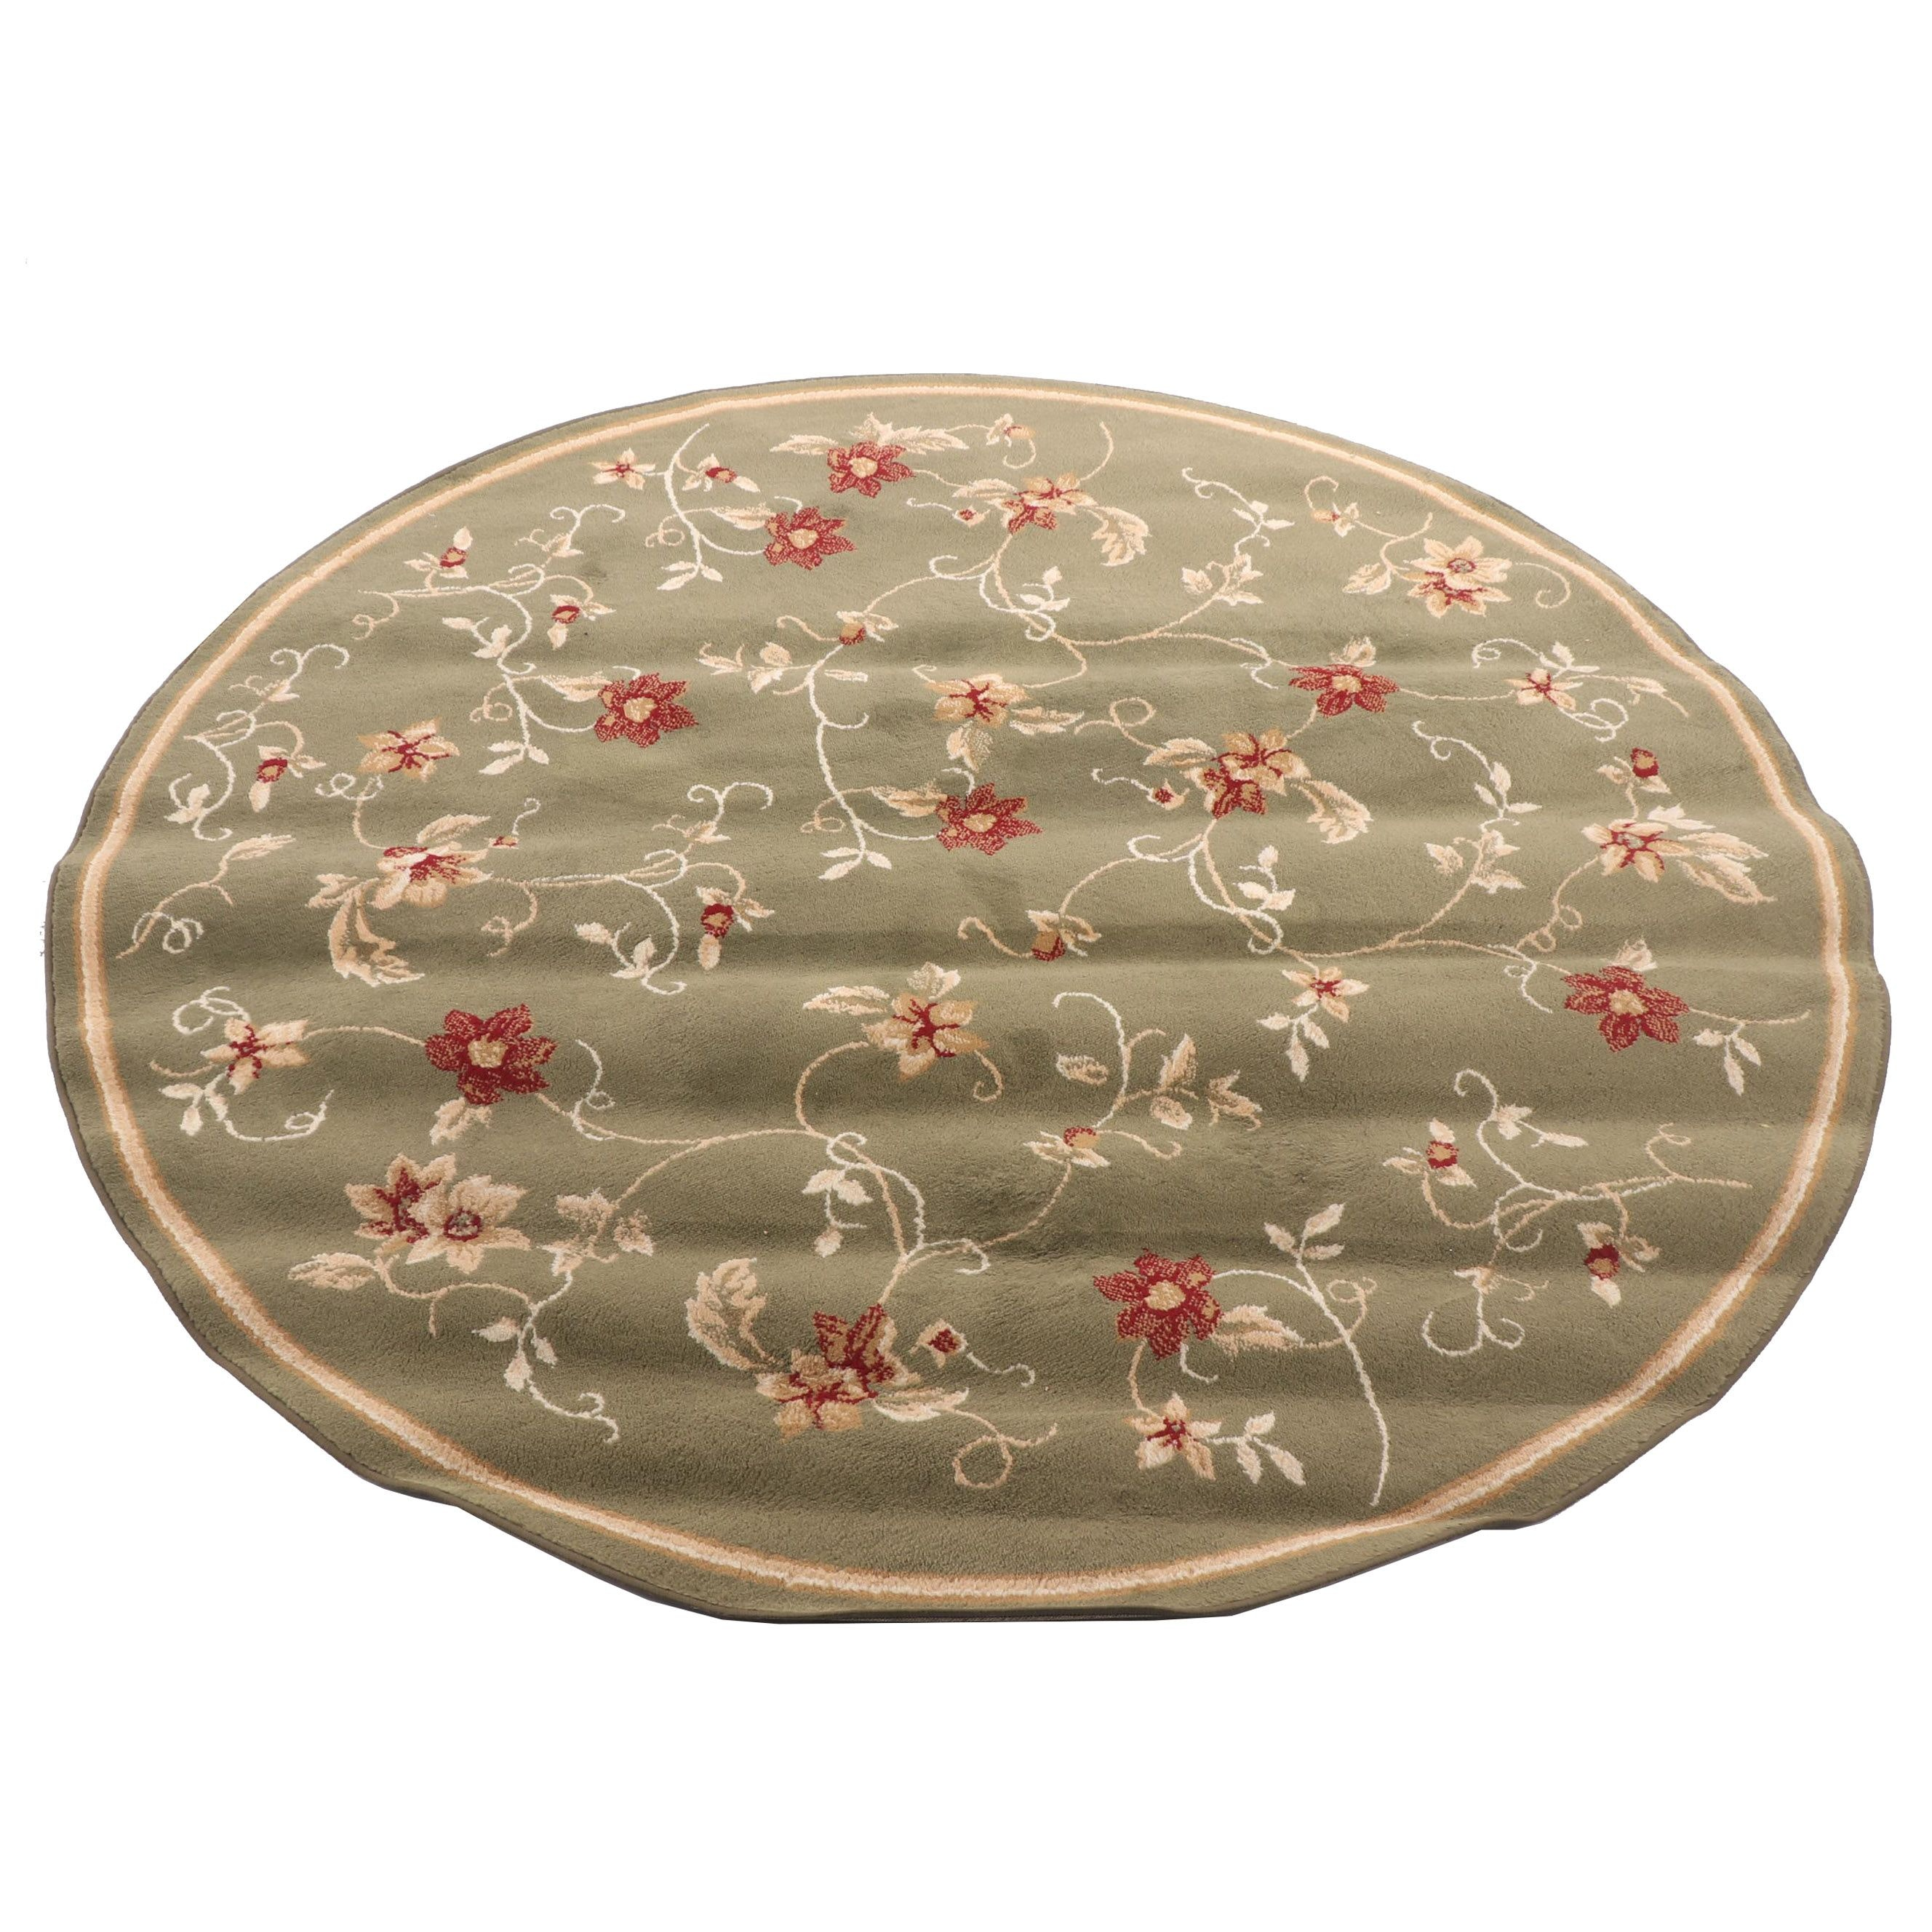 Power-Loomed Floral Round Wool Area Rug